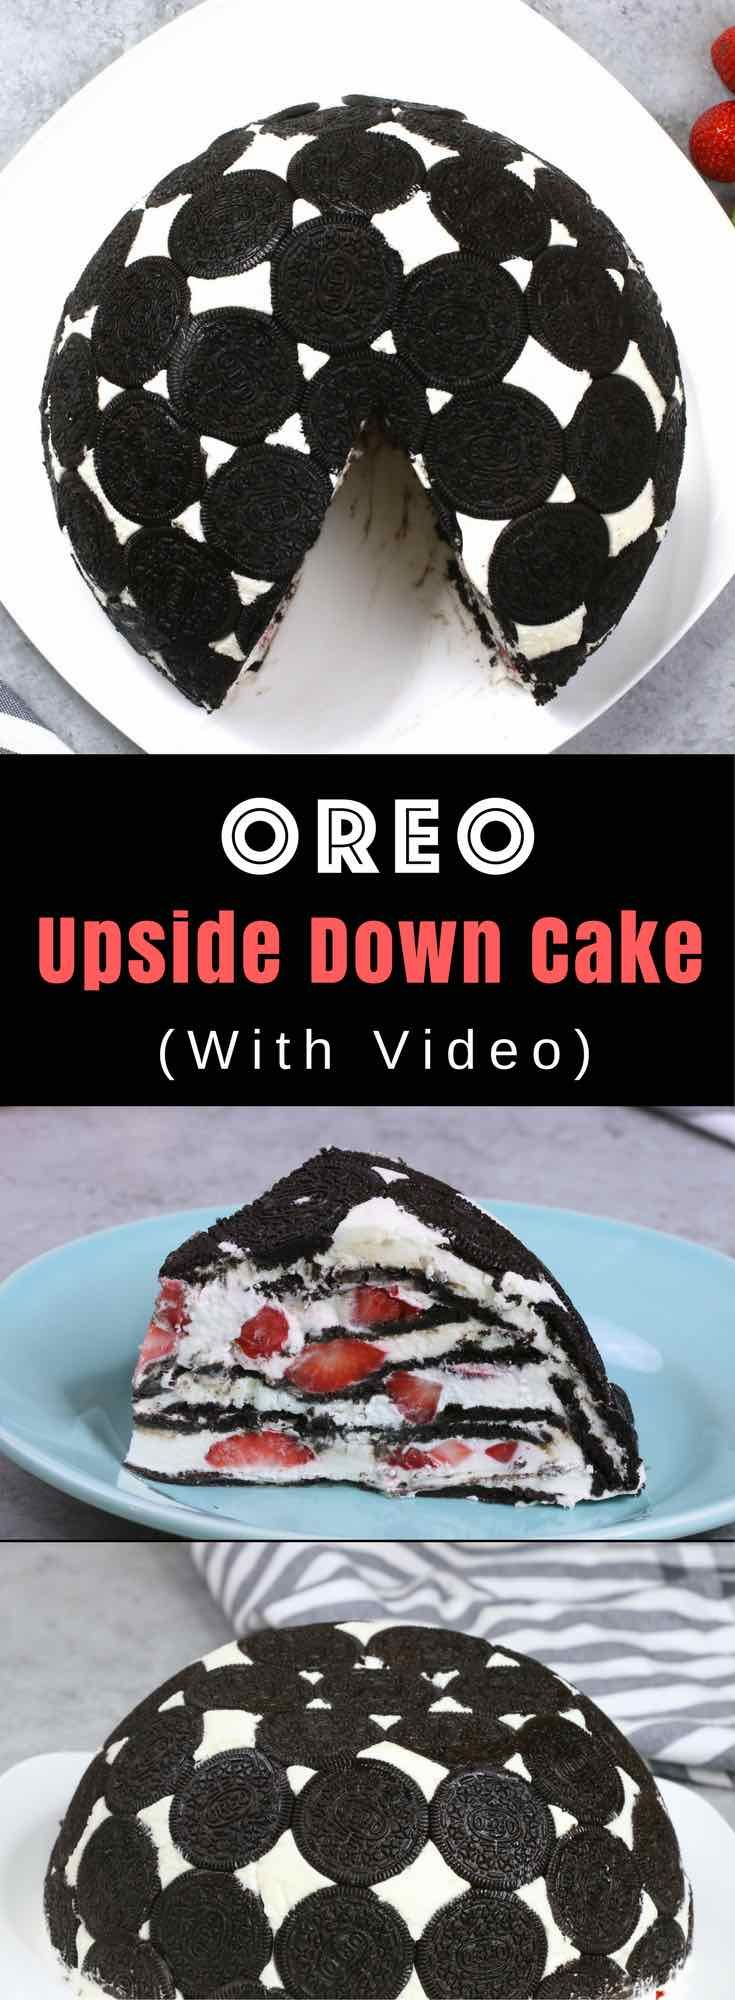 Easy Oreo Cake – So delicious and super easy to make with only a few simple ingredients: Oreos, cream cheese, sugar, cool whip, milk and strawberries. So Good! The perfect quick and easy dessert recipe. Party food. No bake. Video recipe.   tipbuzz.com via @tipbuzz